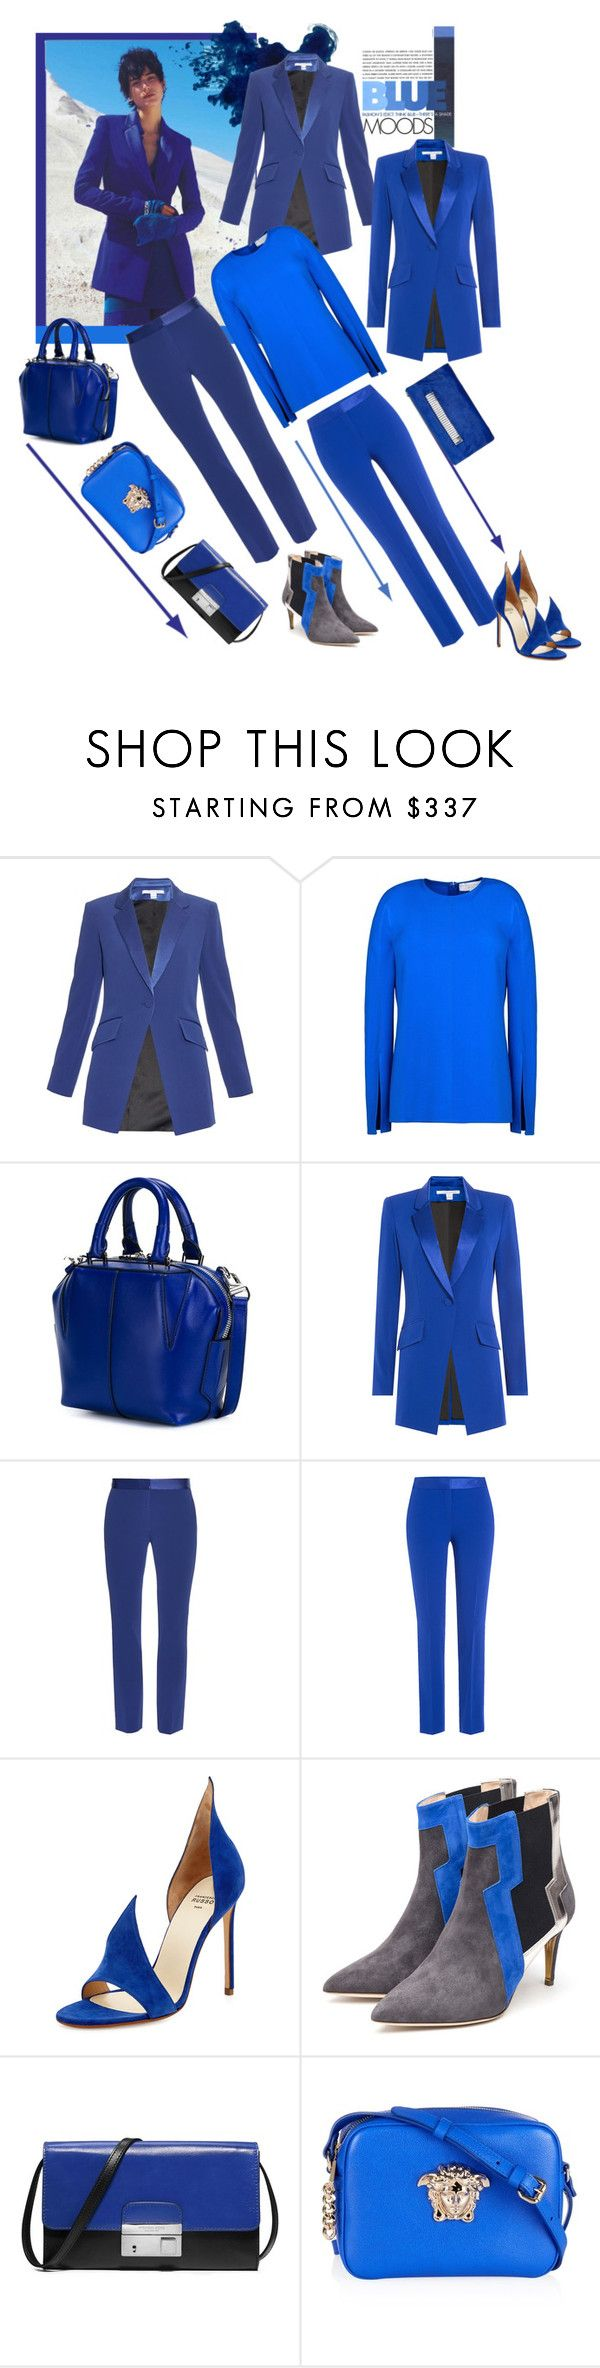 """The Big Blue"" by sylandrya ❤ liked on Polyvore featuring Diane Von Furstenberg, STELLA McCARTNEY, Alexander Wang, Francesco Russo, Rupert Sanderson, Michael Kors, Versace and McQ by Alexander McQueen"